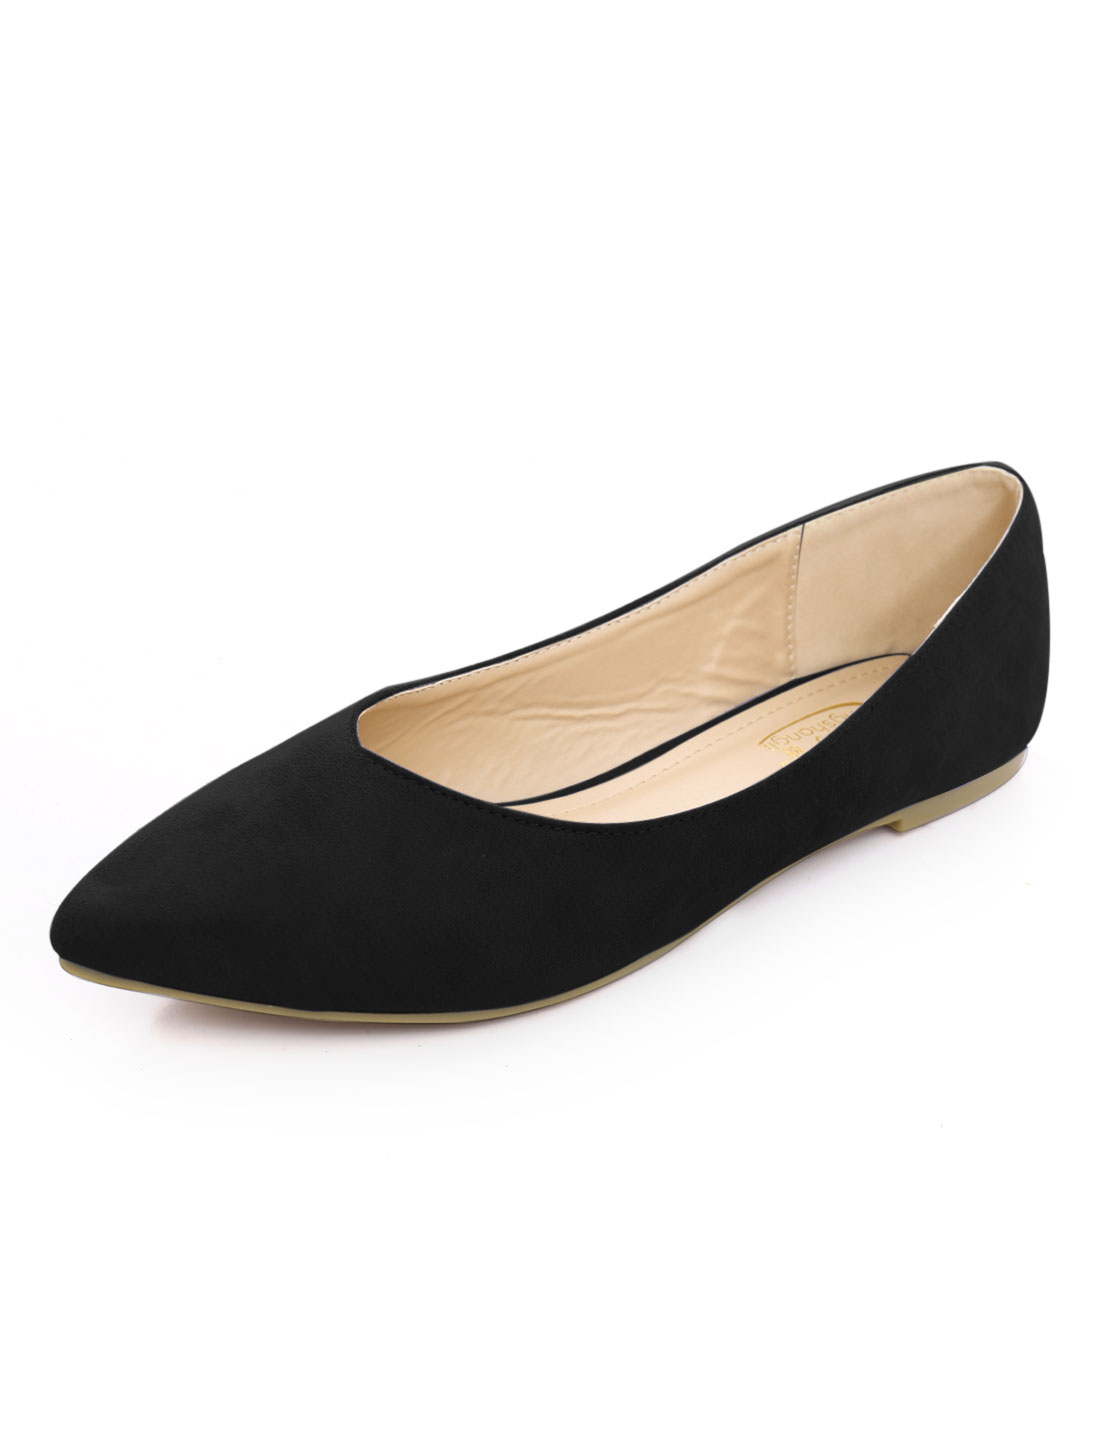 Lady Faux Suede Point-Toe Comfort Shoes Ballet Flat Bronze Black US 9-9.5